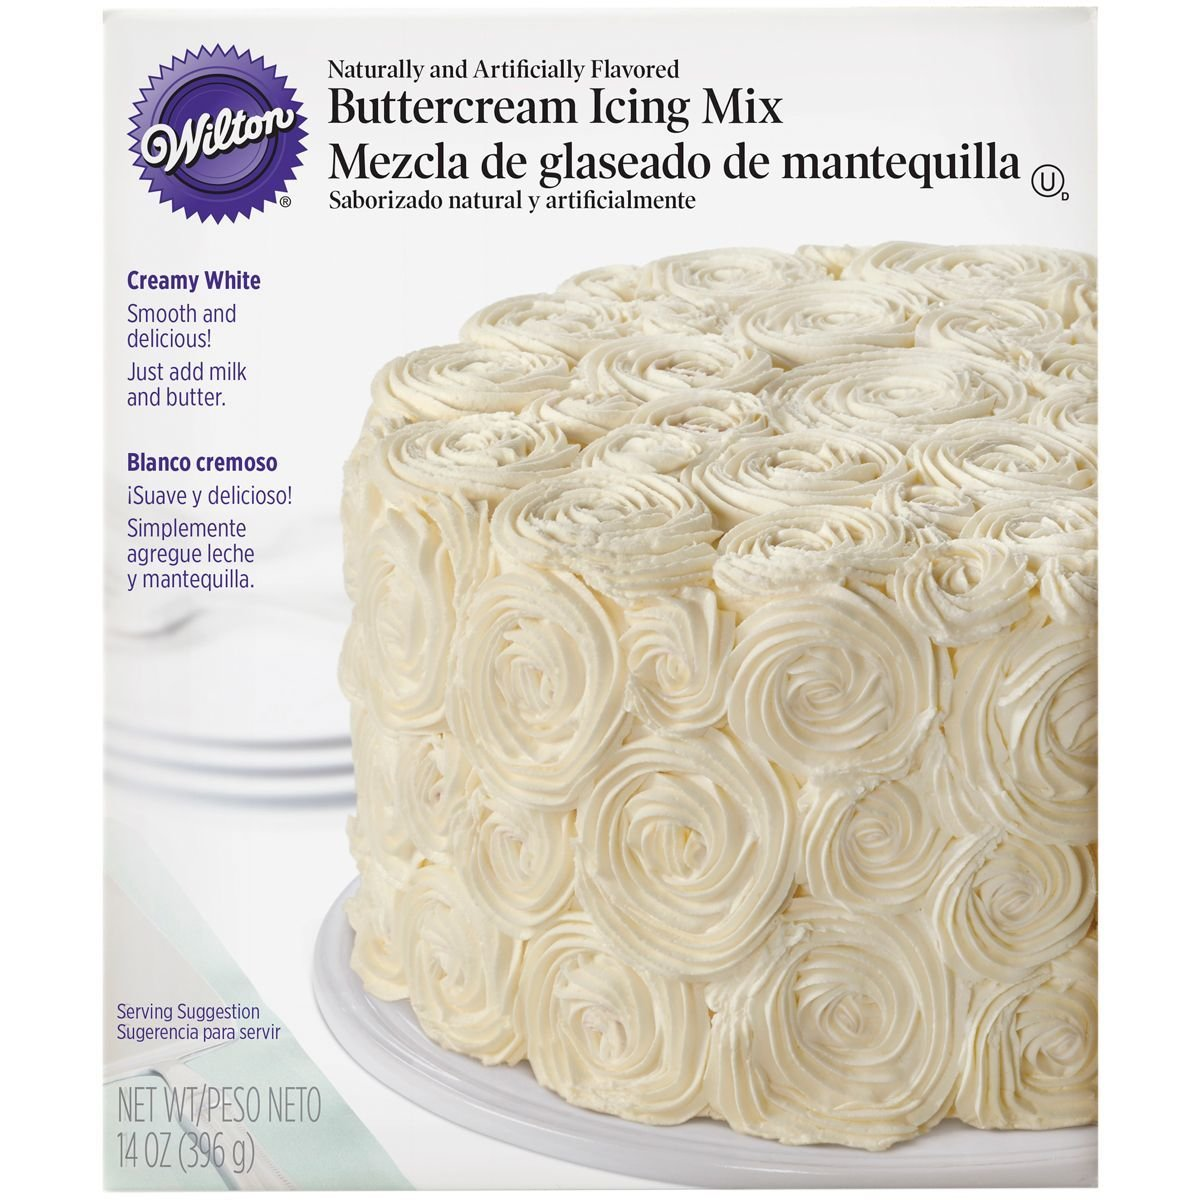 Wilton Creamy White Buttercream Icing Mix 400g λευκή βουτυρόκρεμα